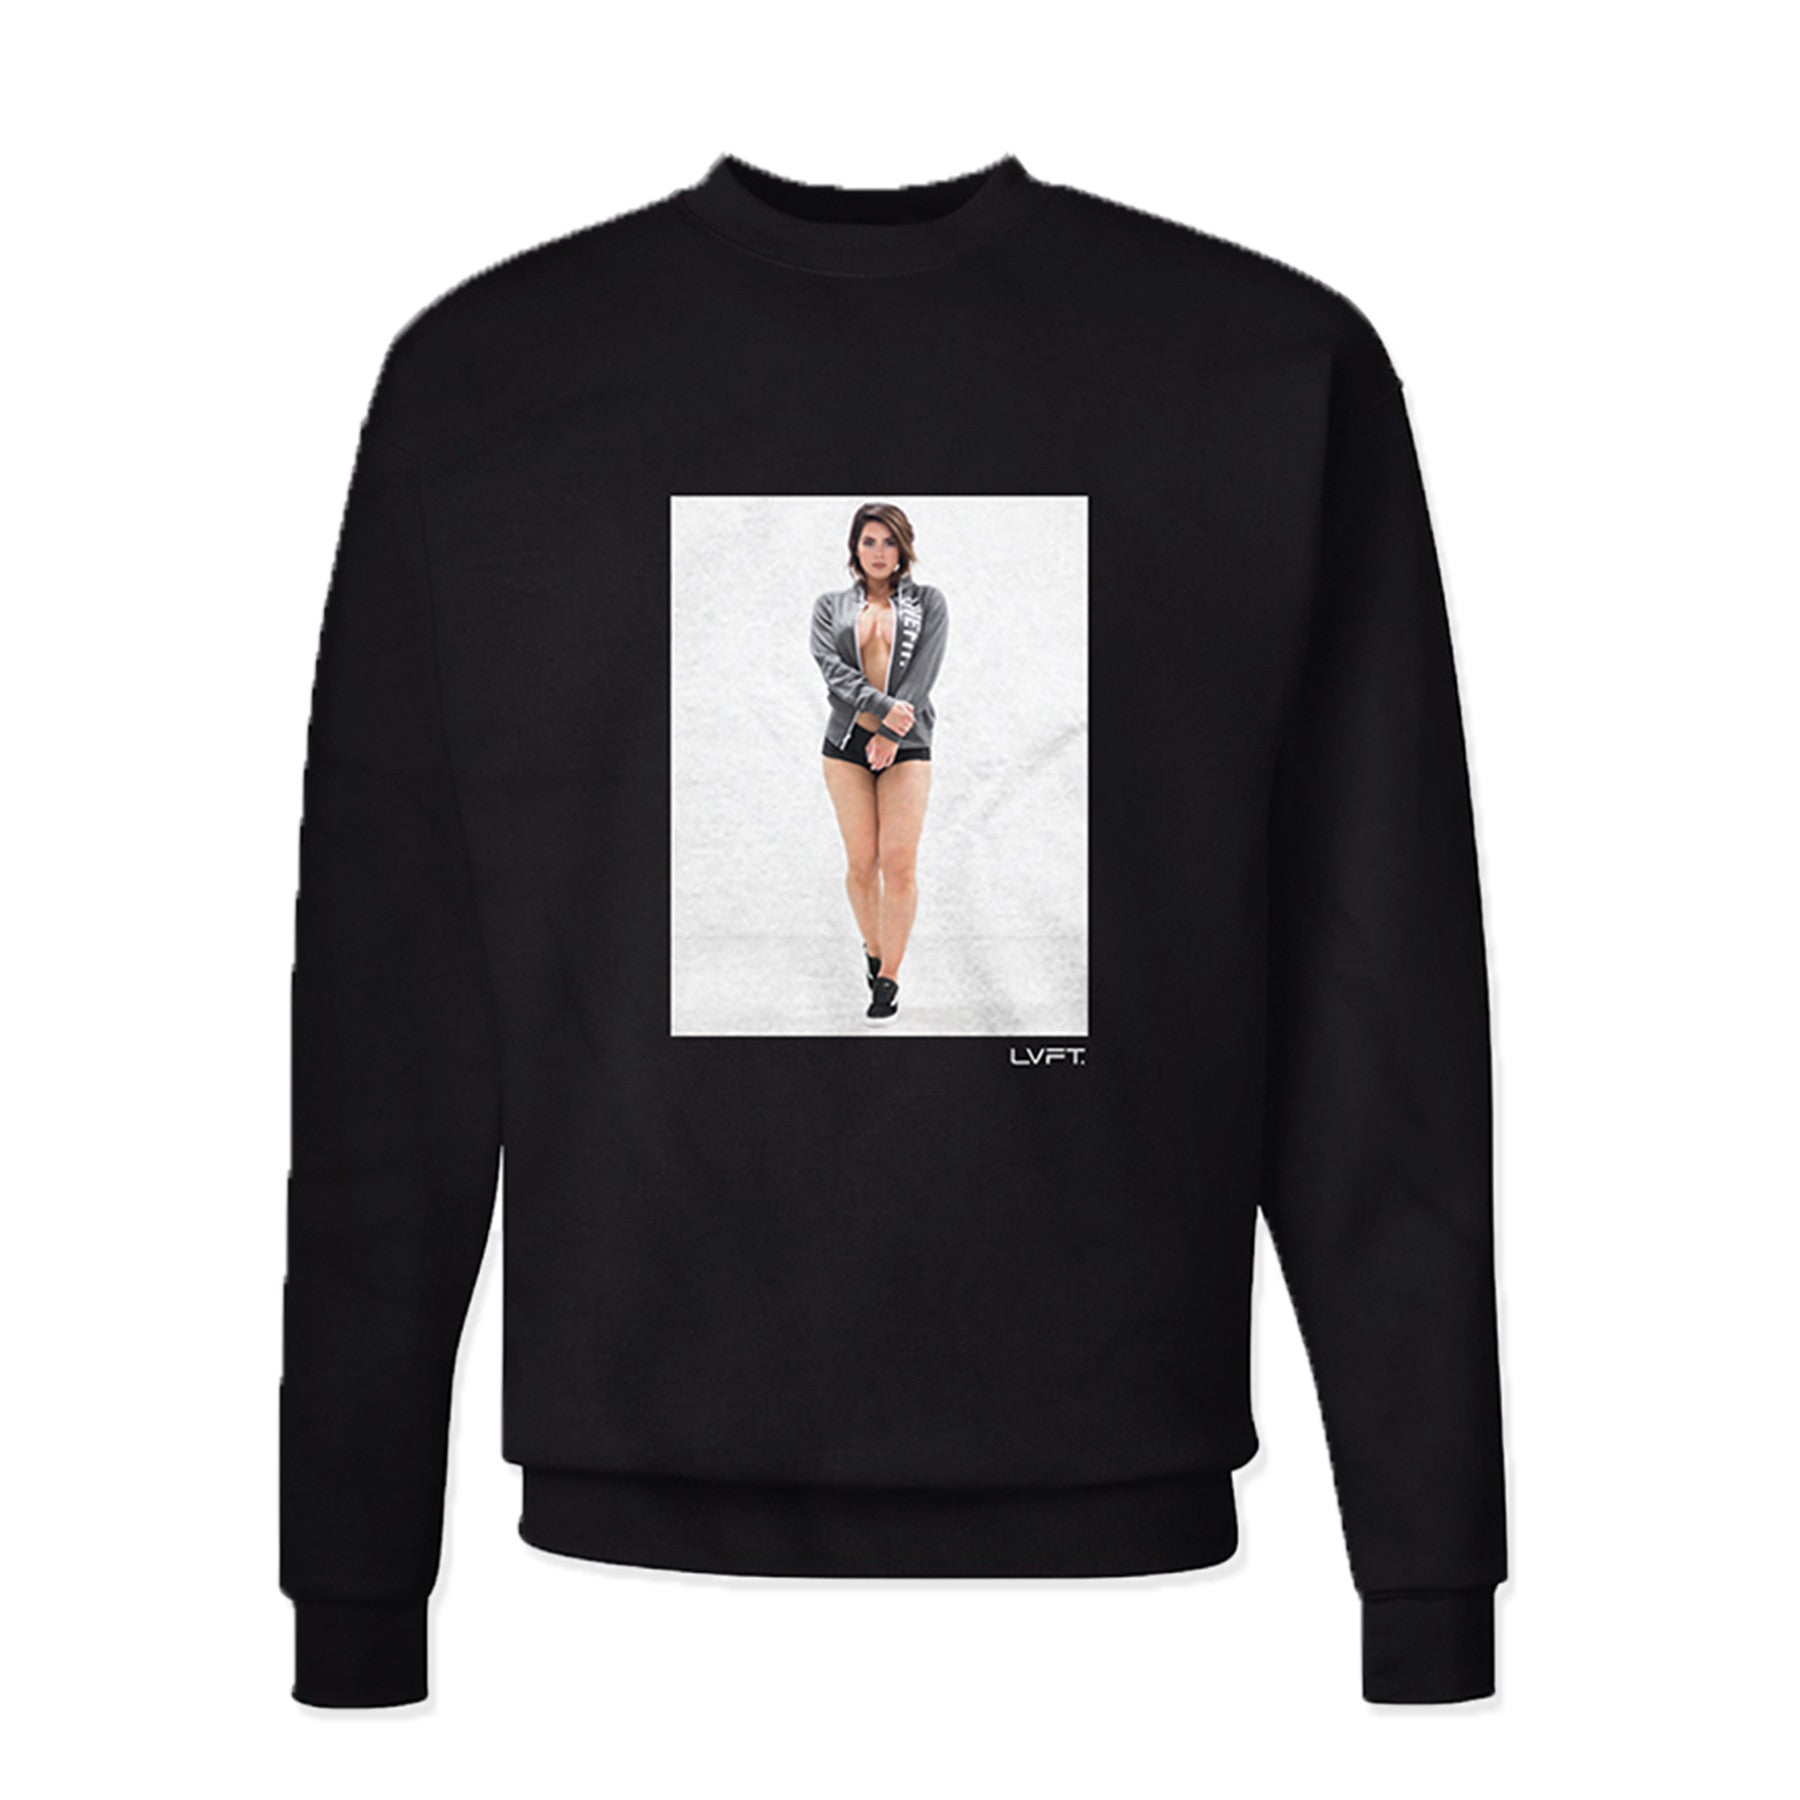 Alicia Coates Crewneck